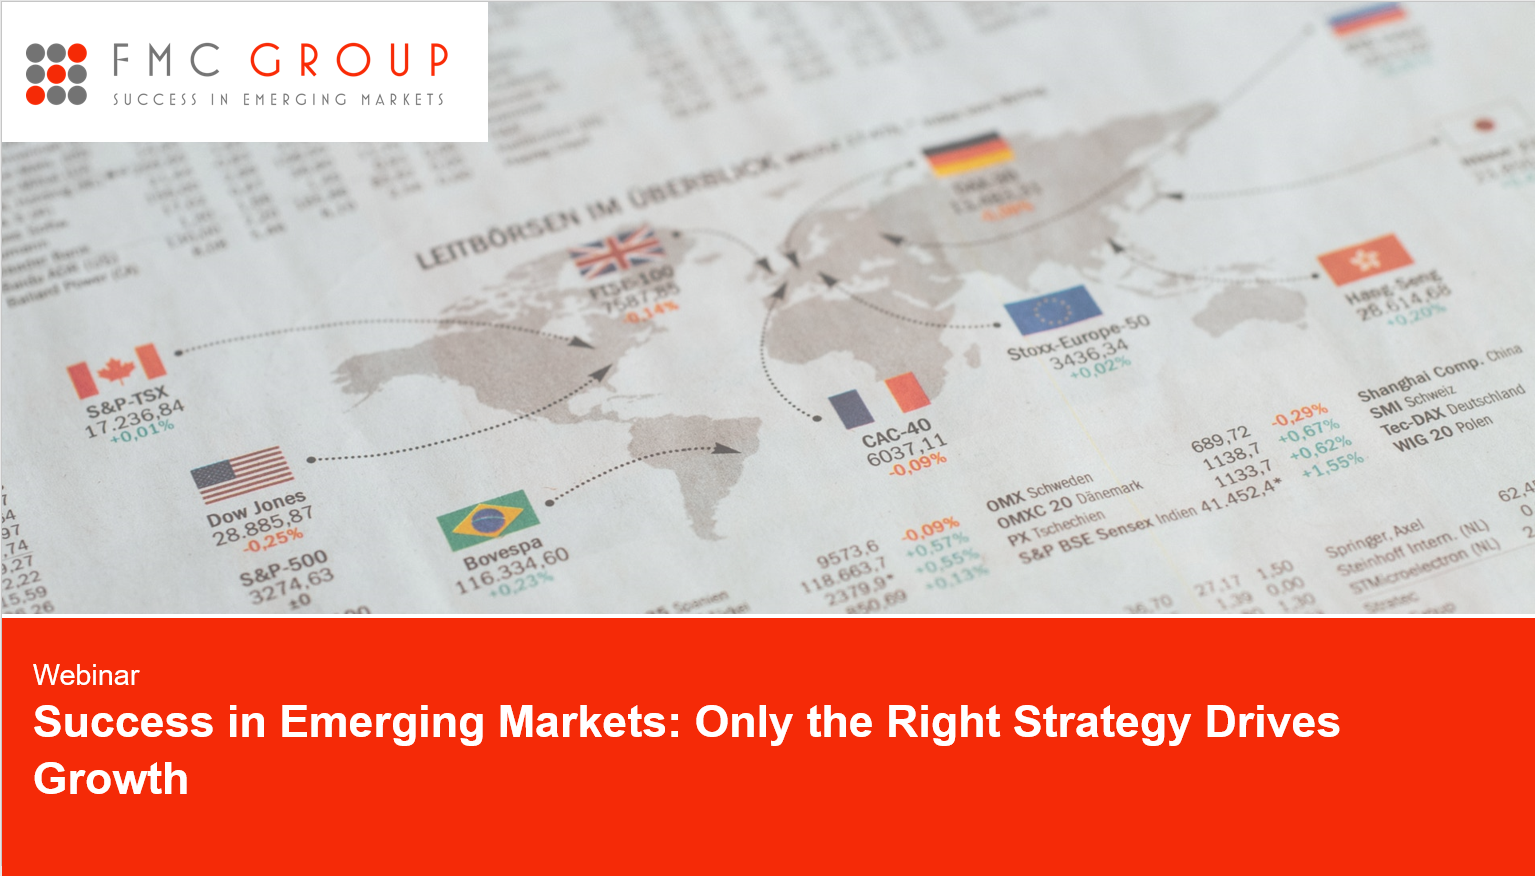 cover page of Webinar - Success in Emerging Markets